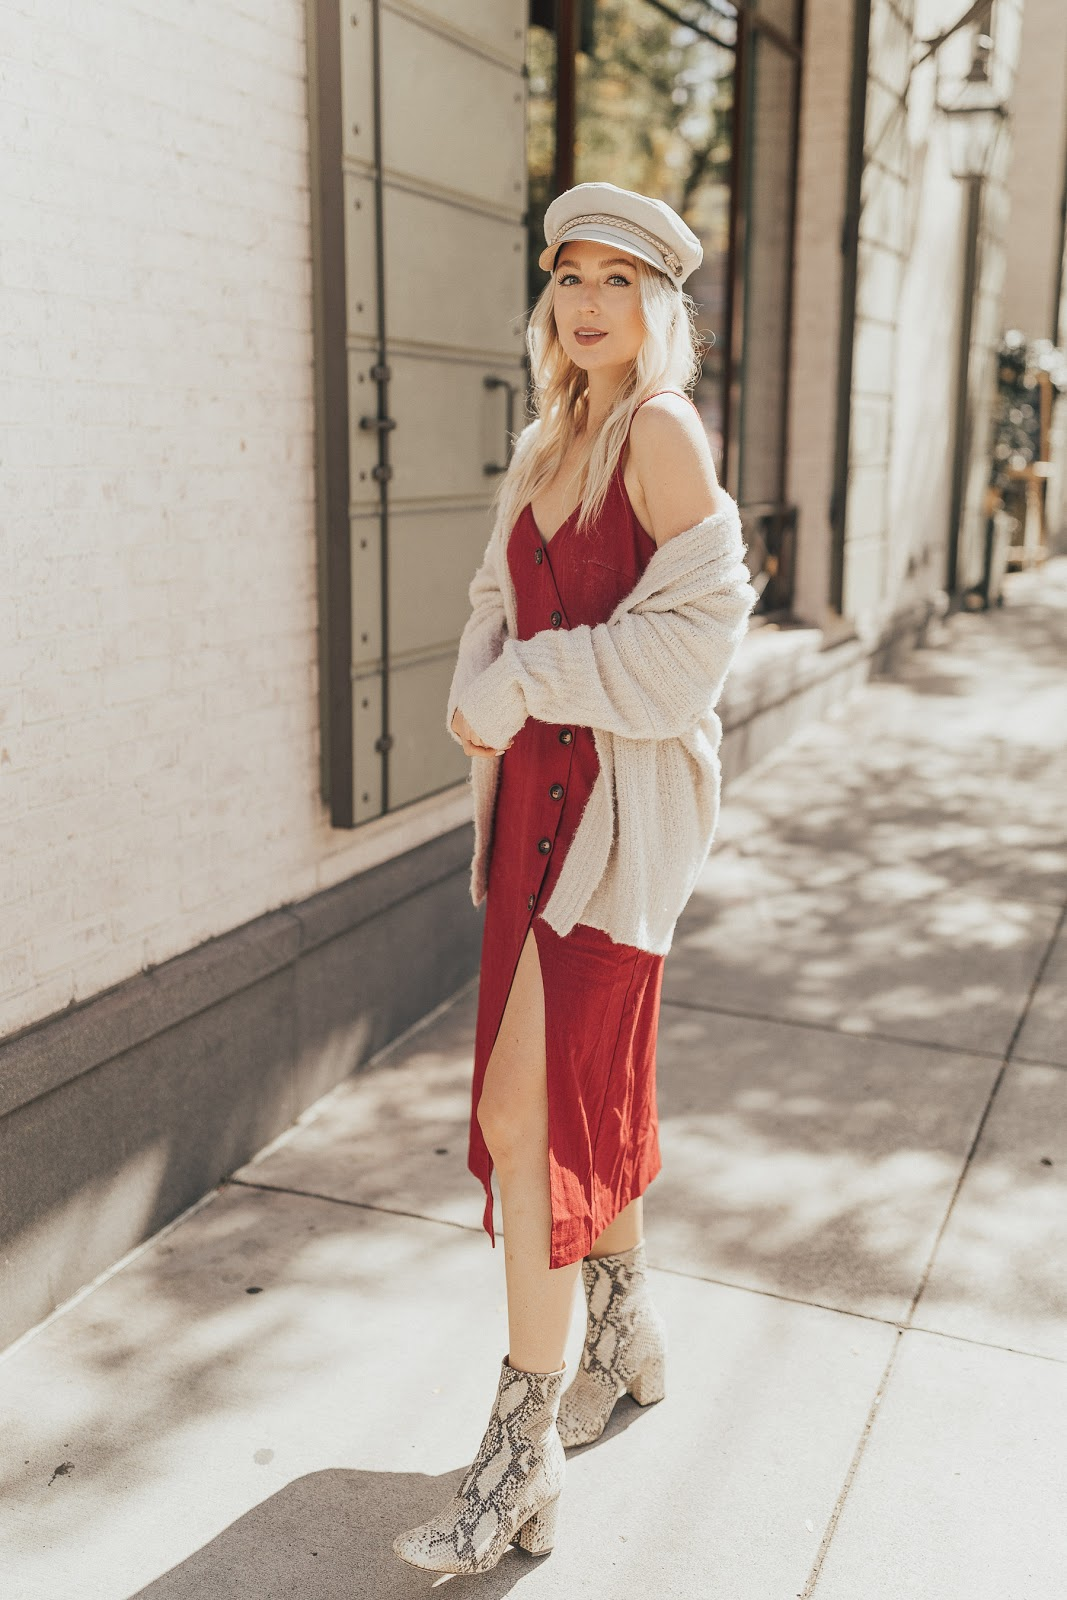 How to wear a linen dress in the fall